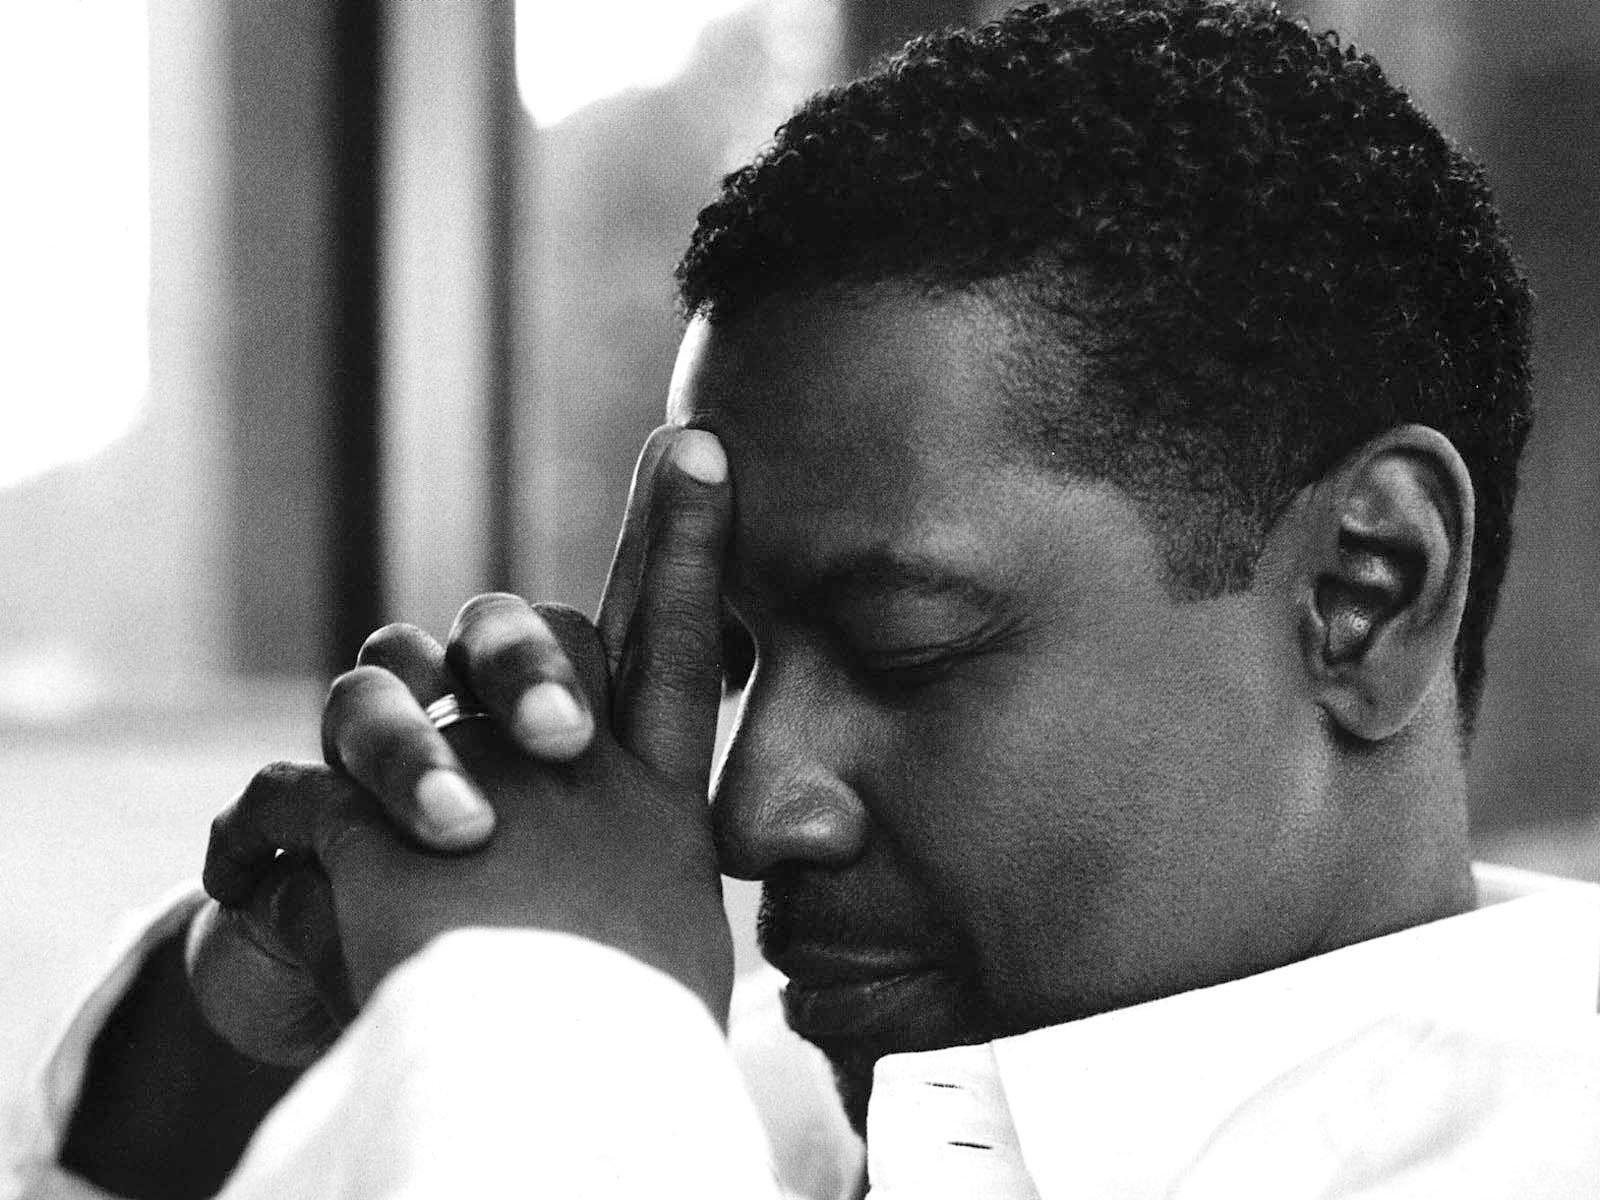 monochrome denzel washington computer wallpaper 53572